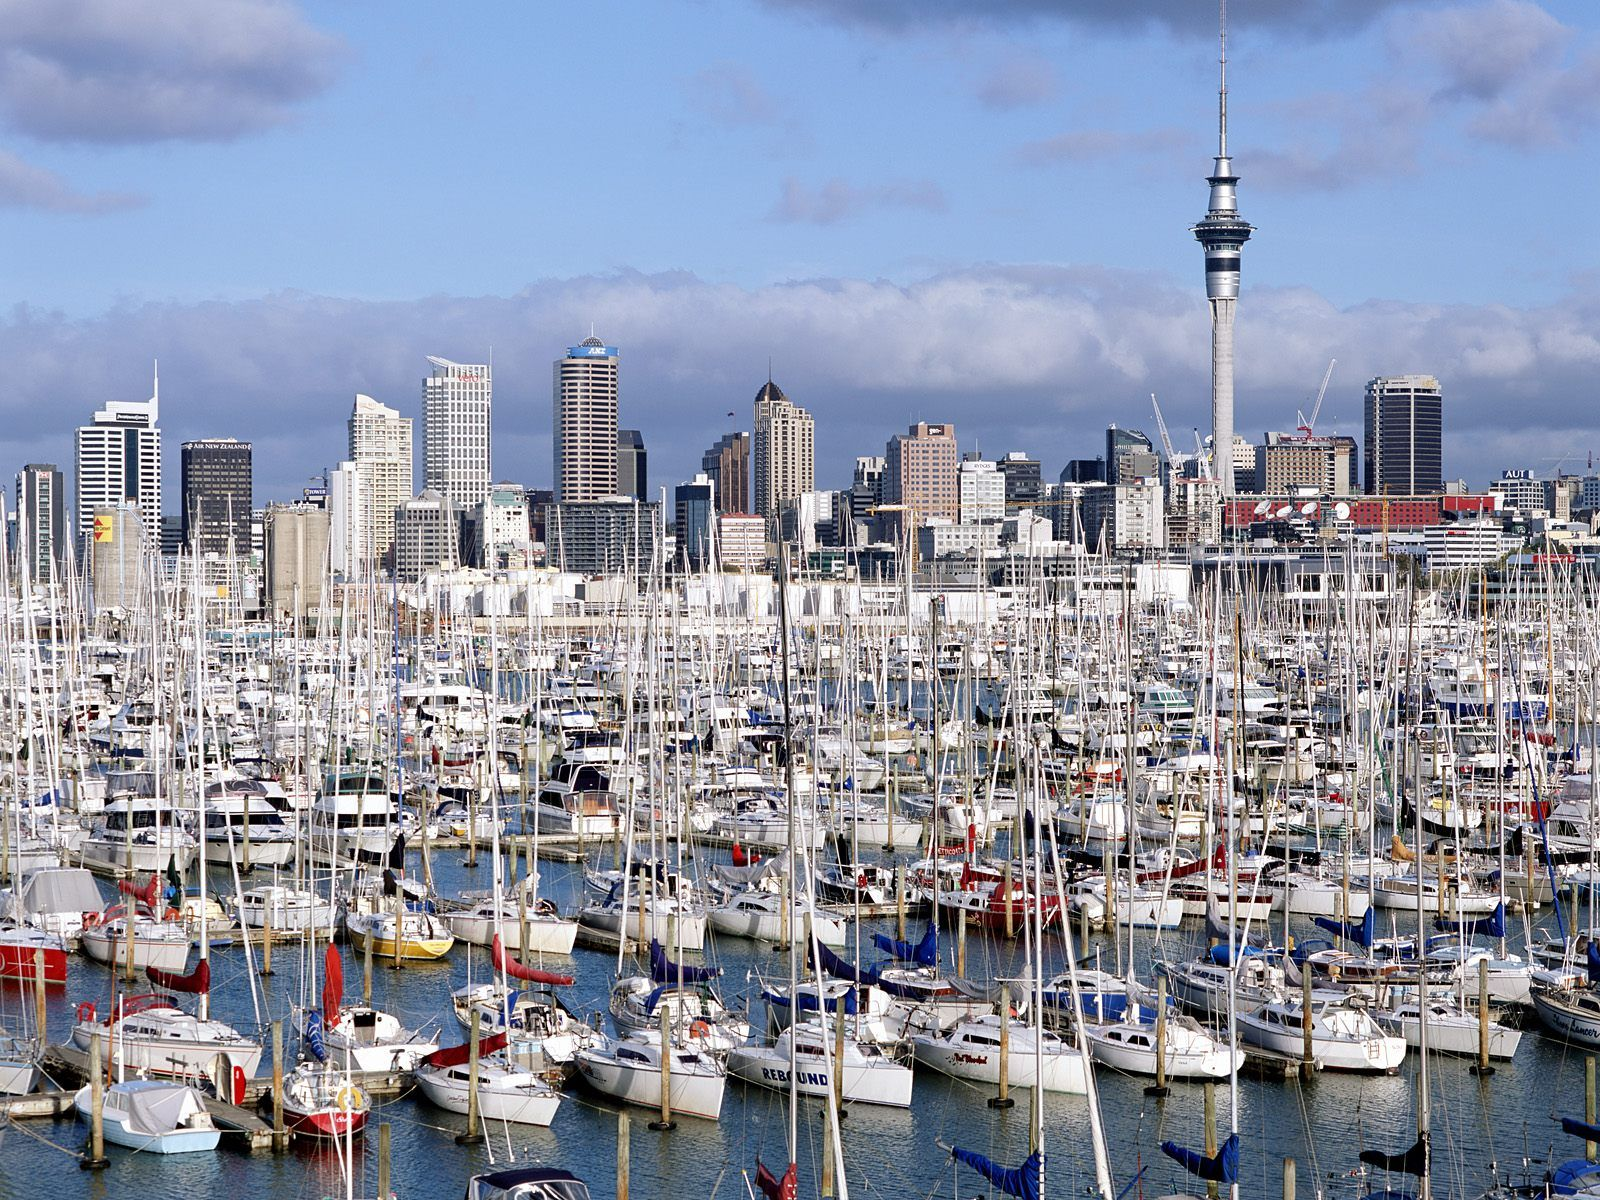 Auckland Named The City Of Sails For Good Reason Auckland New